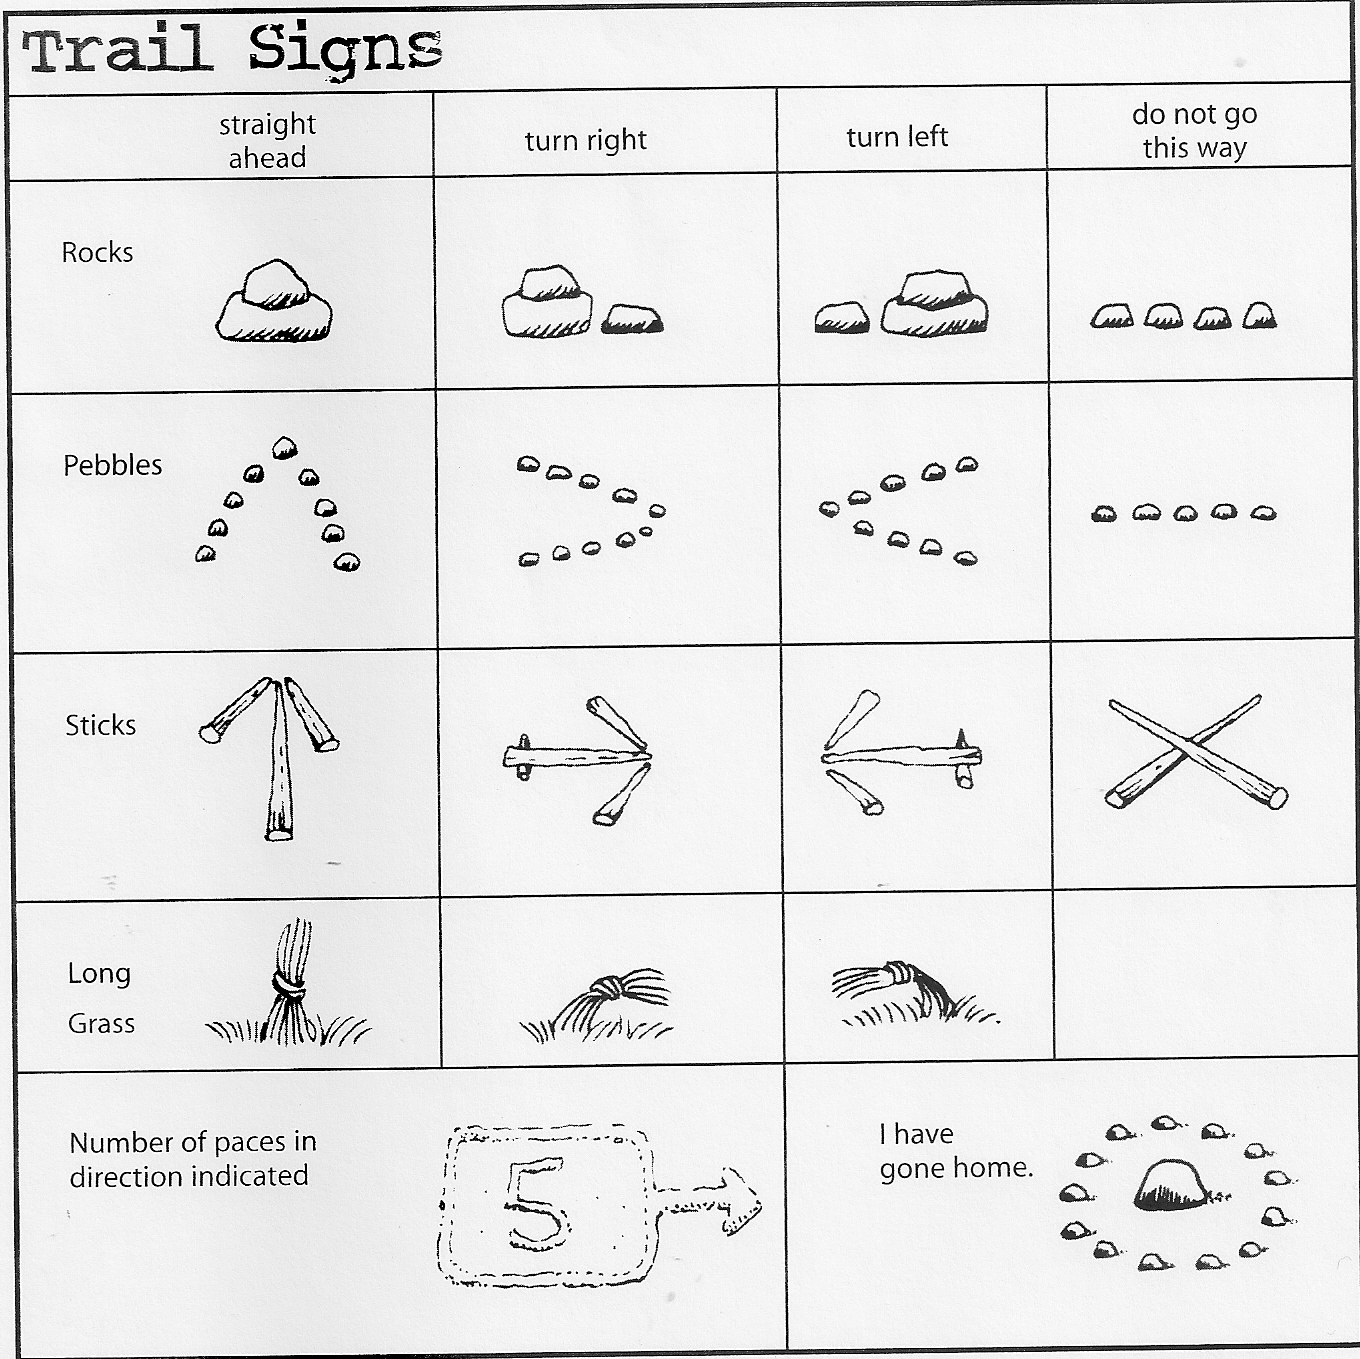 a canadian guider trail signs